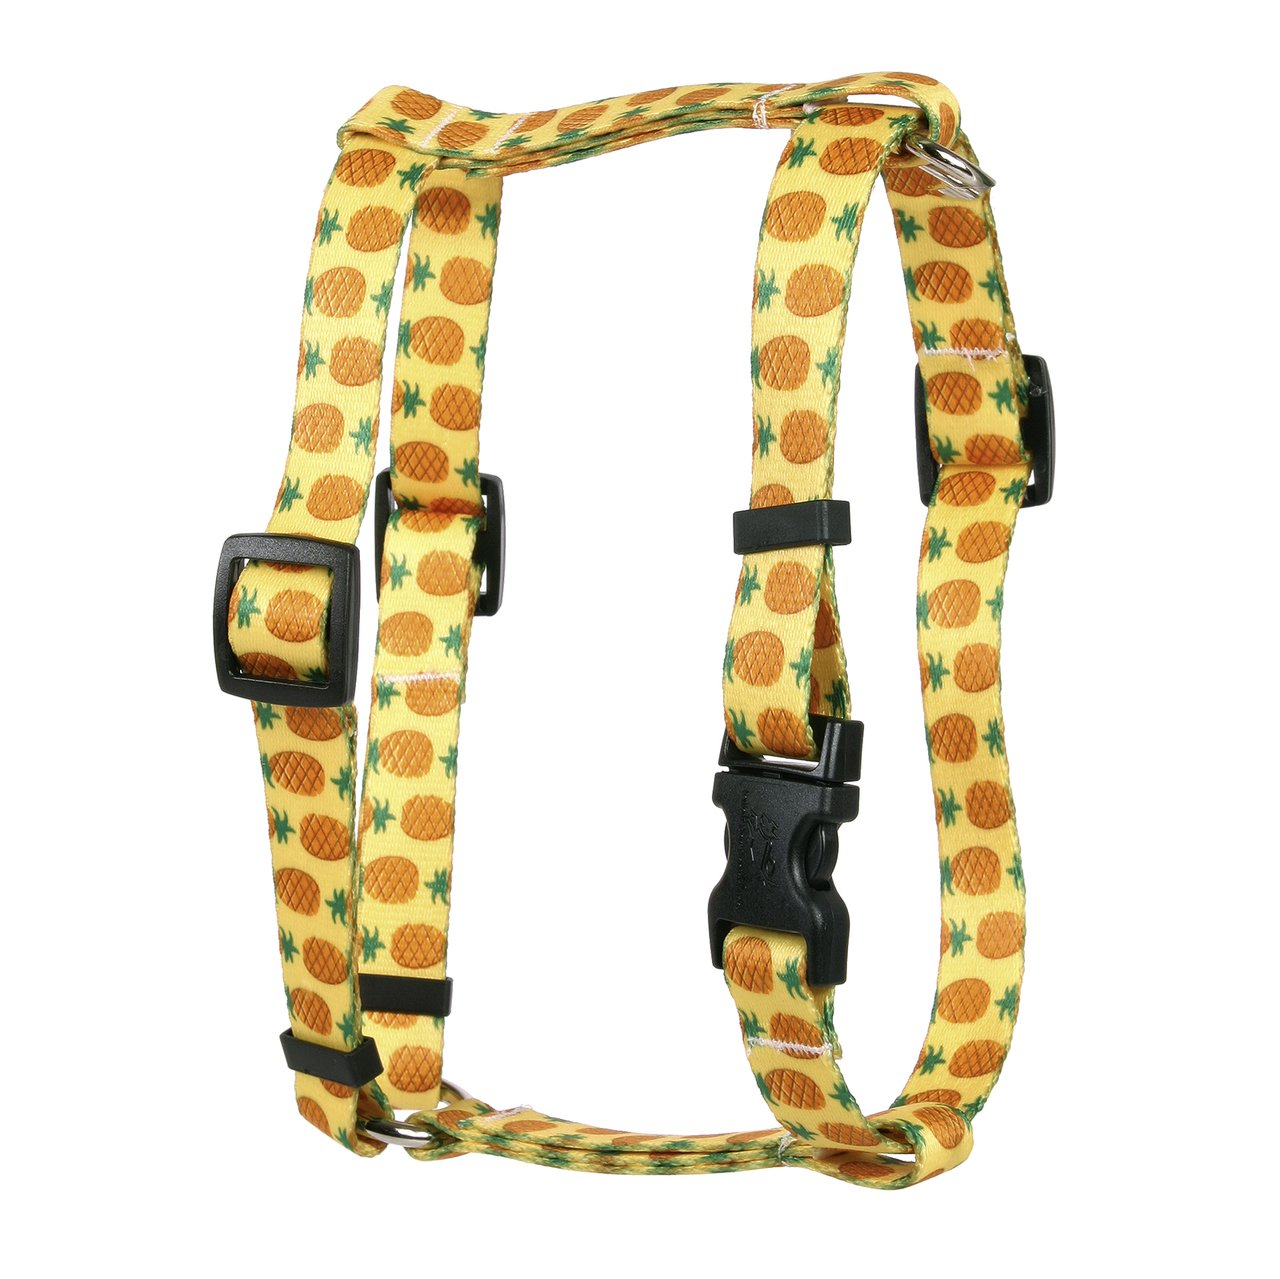 Yellow Dog Design Pineapples Yellow Roman Style H Dog Harness, Large-1'' Wide and fits Chest of 20 to 28''